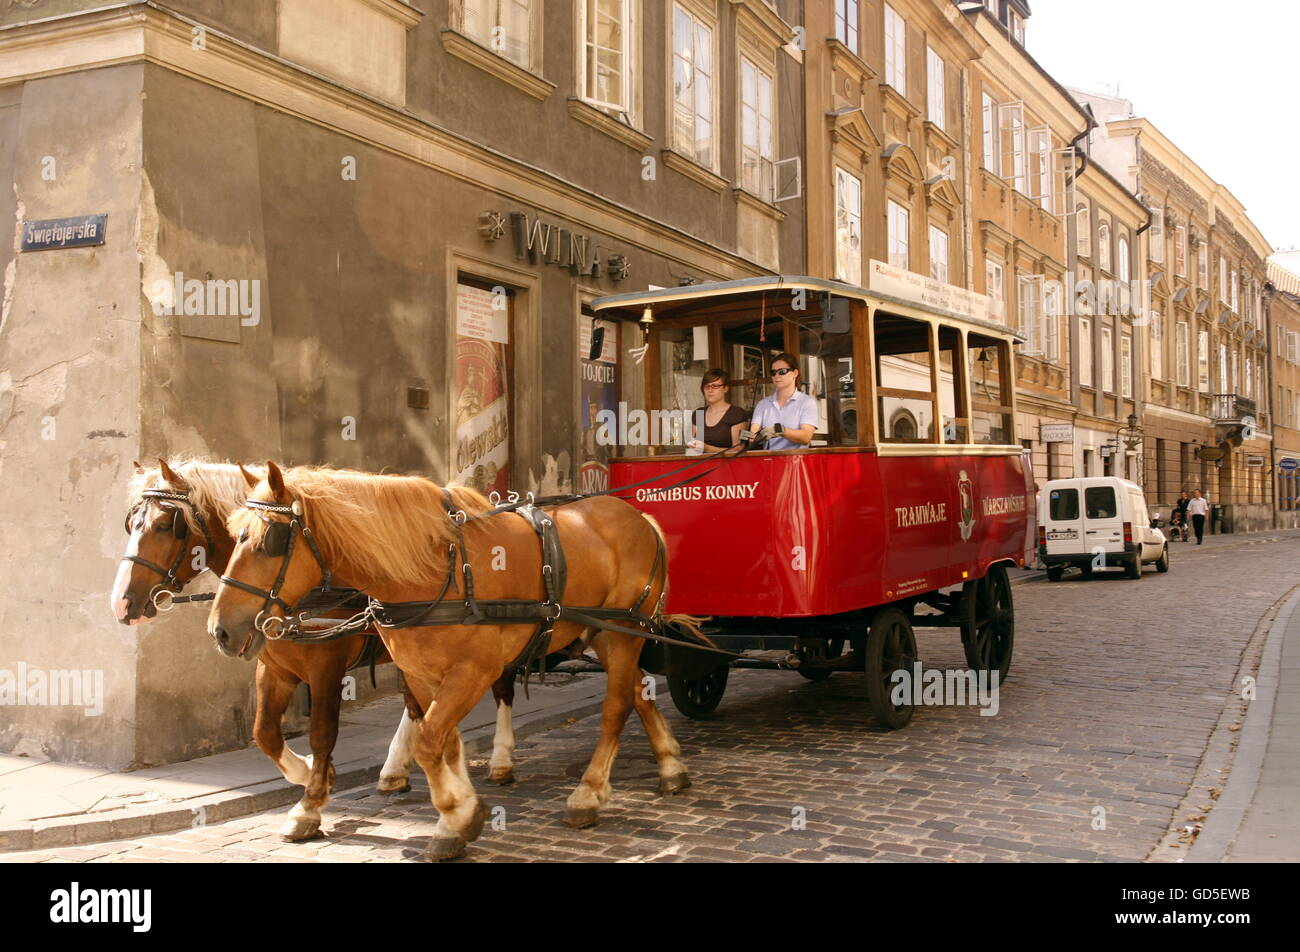 a streetszene in the old town  in the City of Warsaw in Poland, East Europe. - Stock Image